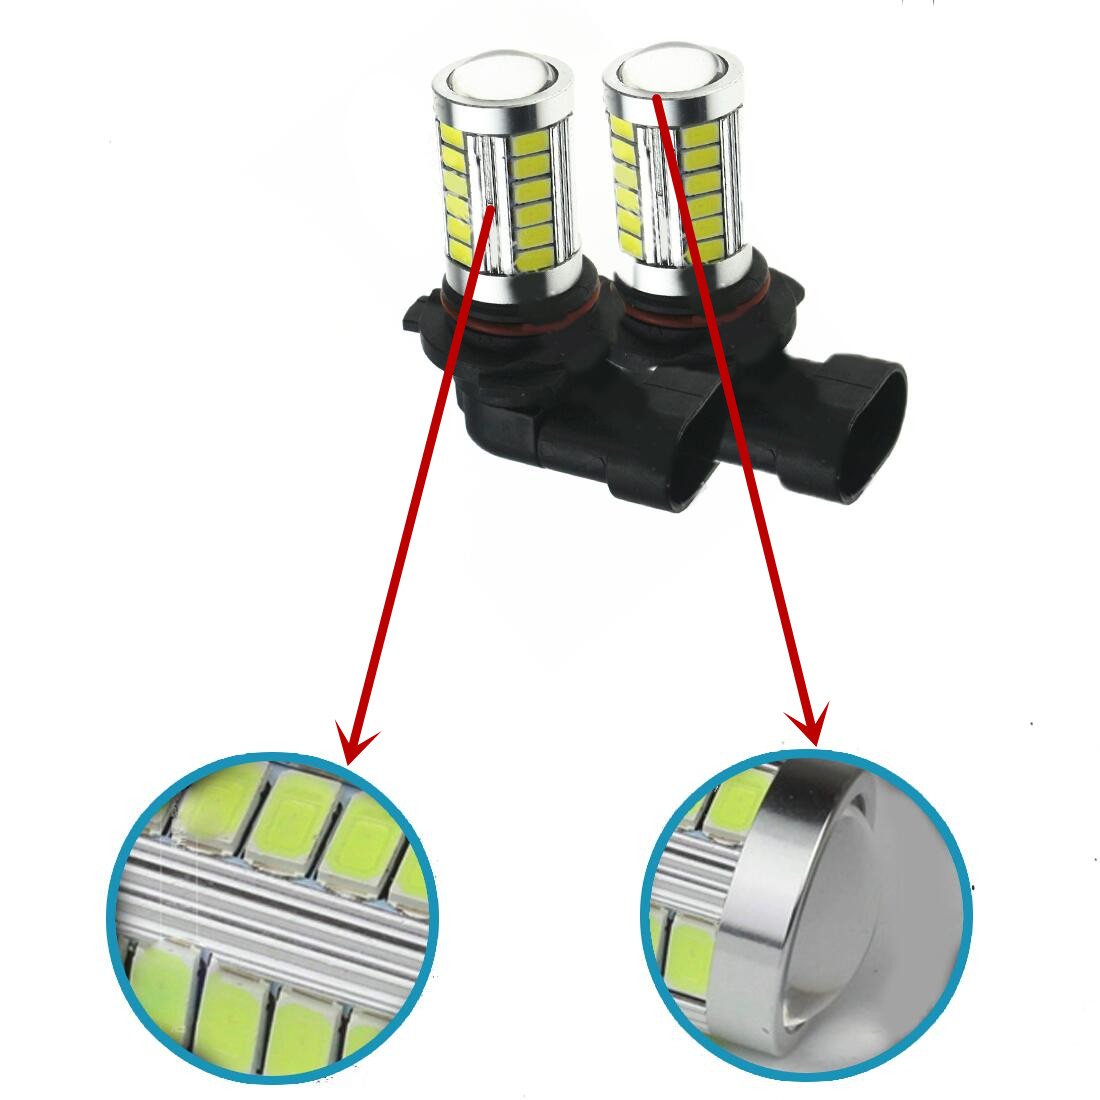 2x 9006/HB4 LED Daylight White Car LED Fog Driving Lights Auto Daytime Running Lights Clearance Lamp For BMW E60 E63 E64<br><br>Aliexpress